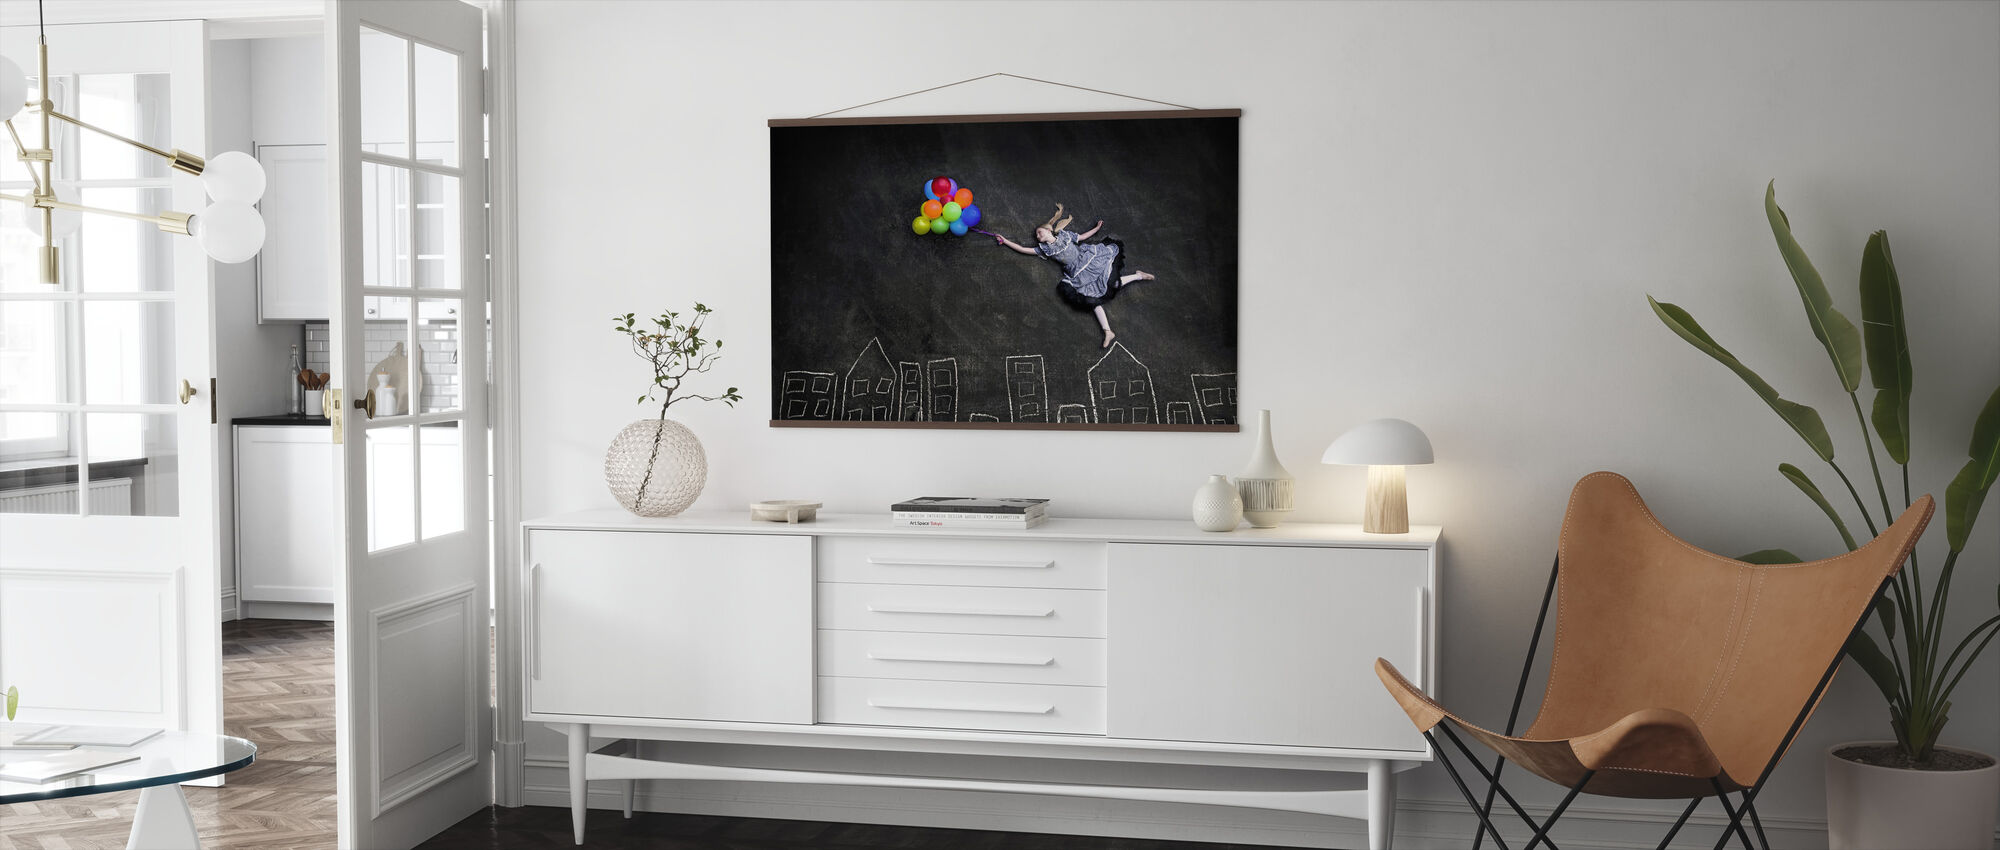 Flying on the Rooftops - Poster - Living Room